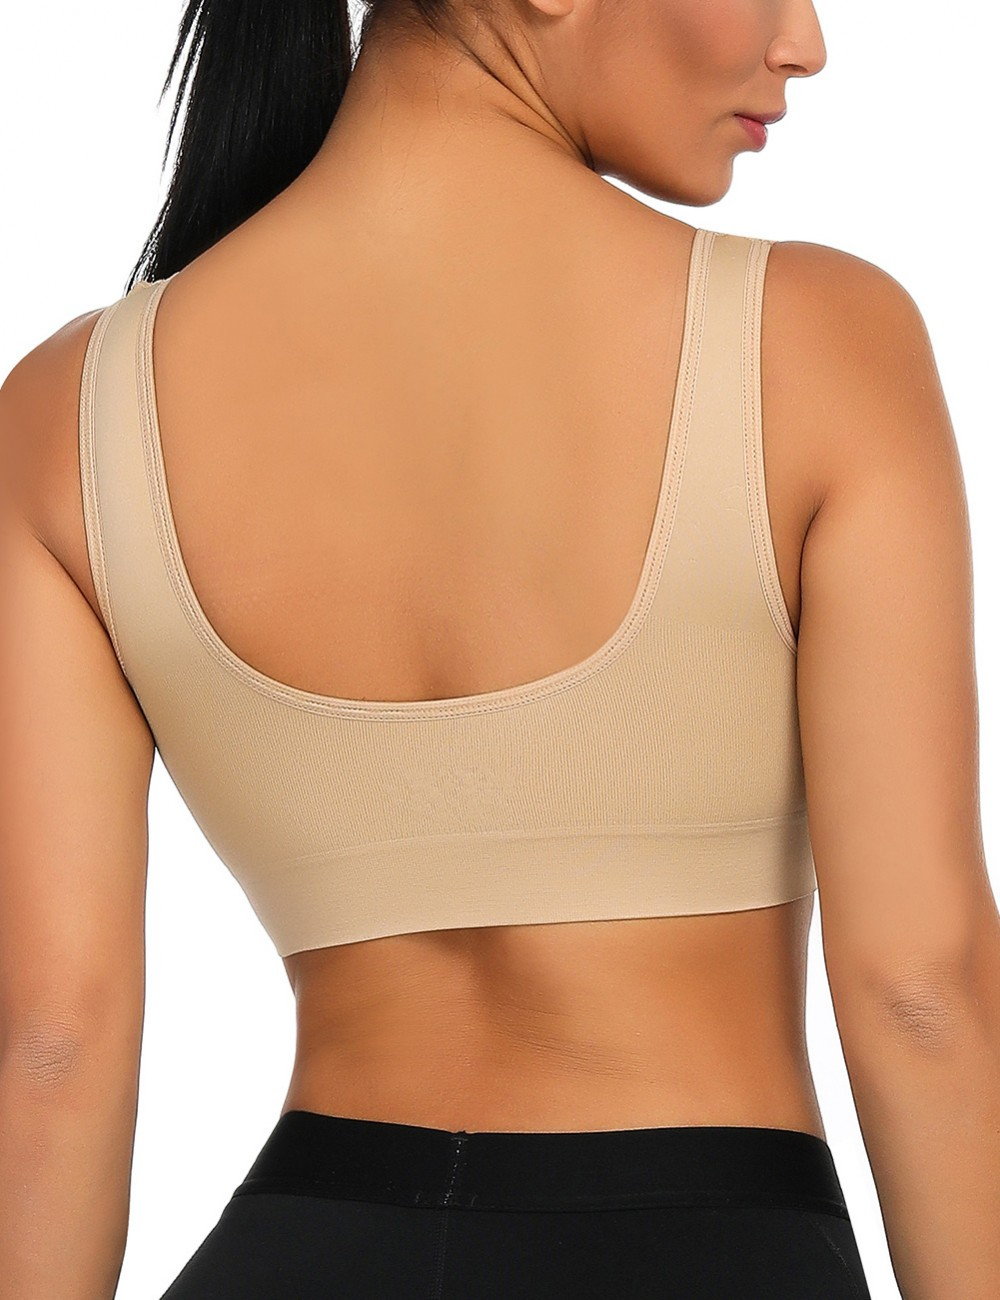 Sensational Nude Seamless Big Size No-Wire Padded Sport Bras Exercise